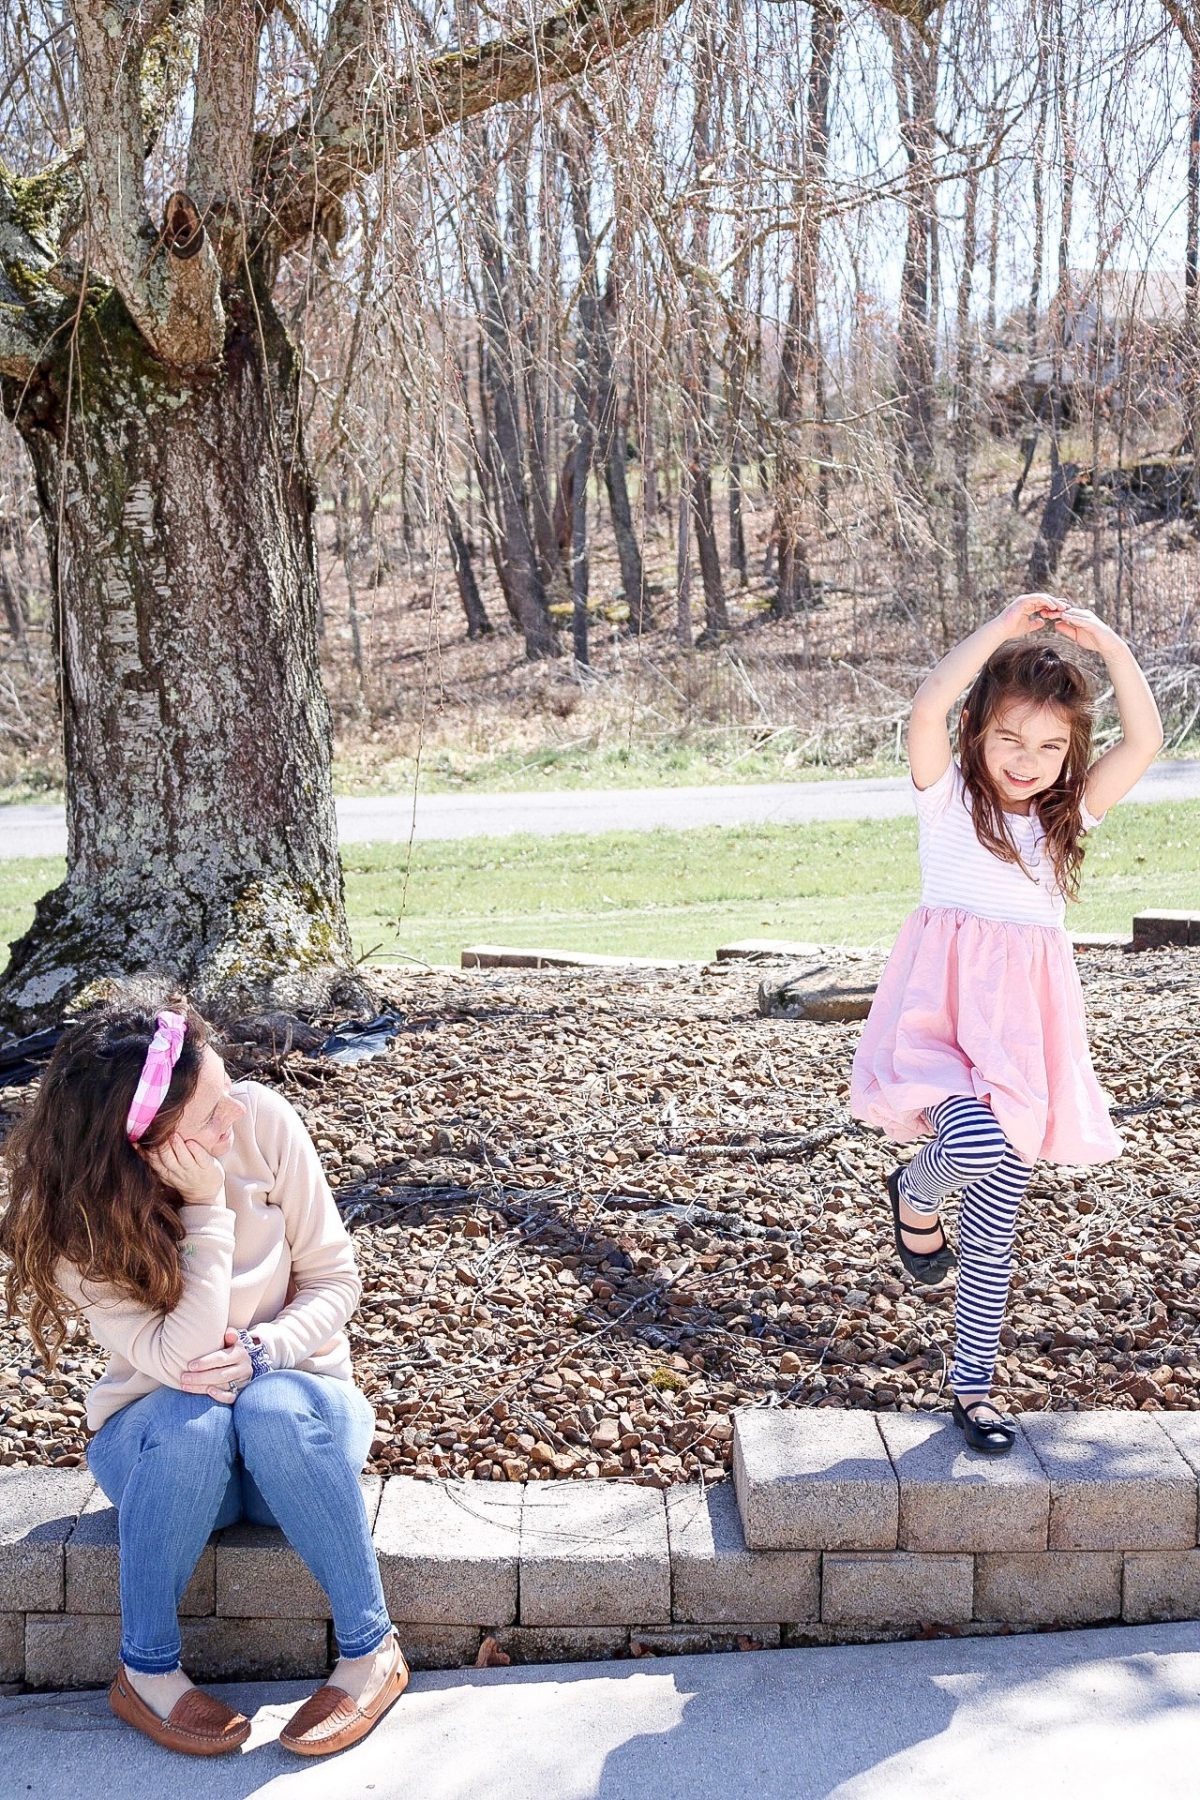 Mom wearing pink headband, tan dudley stephens fleece, moccasins, looking at little girl wearing pink dress and standing in a passe